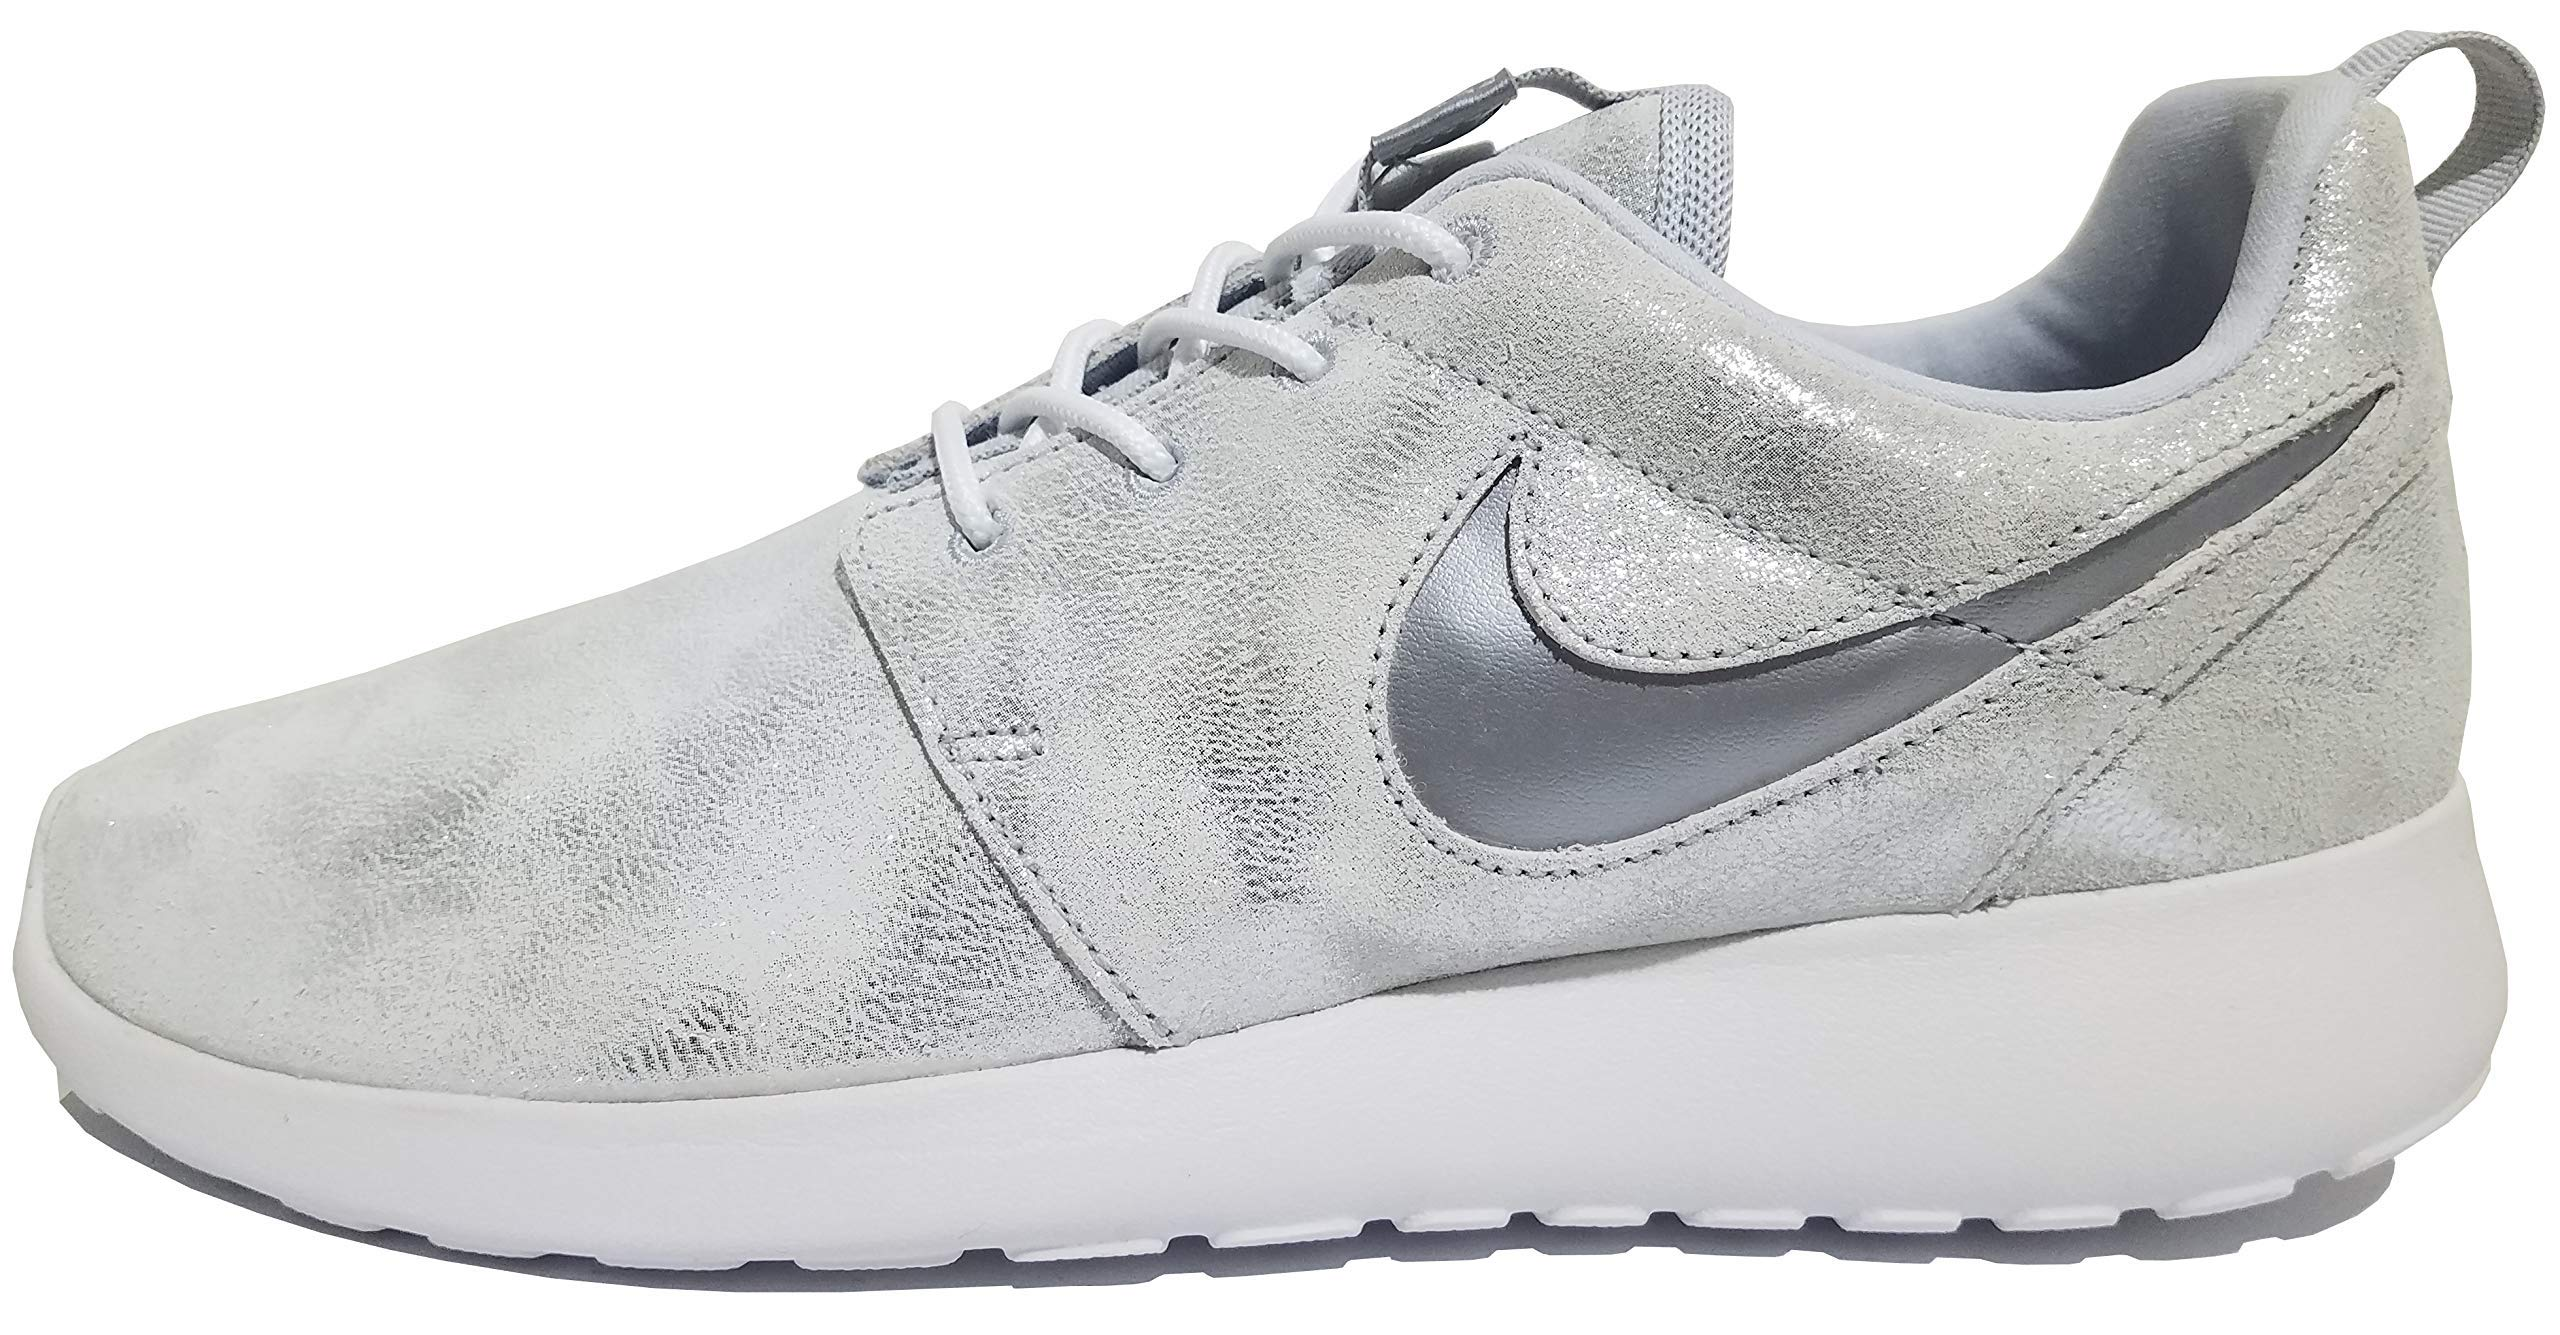 Details about Nike Roshe Running Shoe iD Premium Leather Brown White Size 6.5